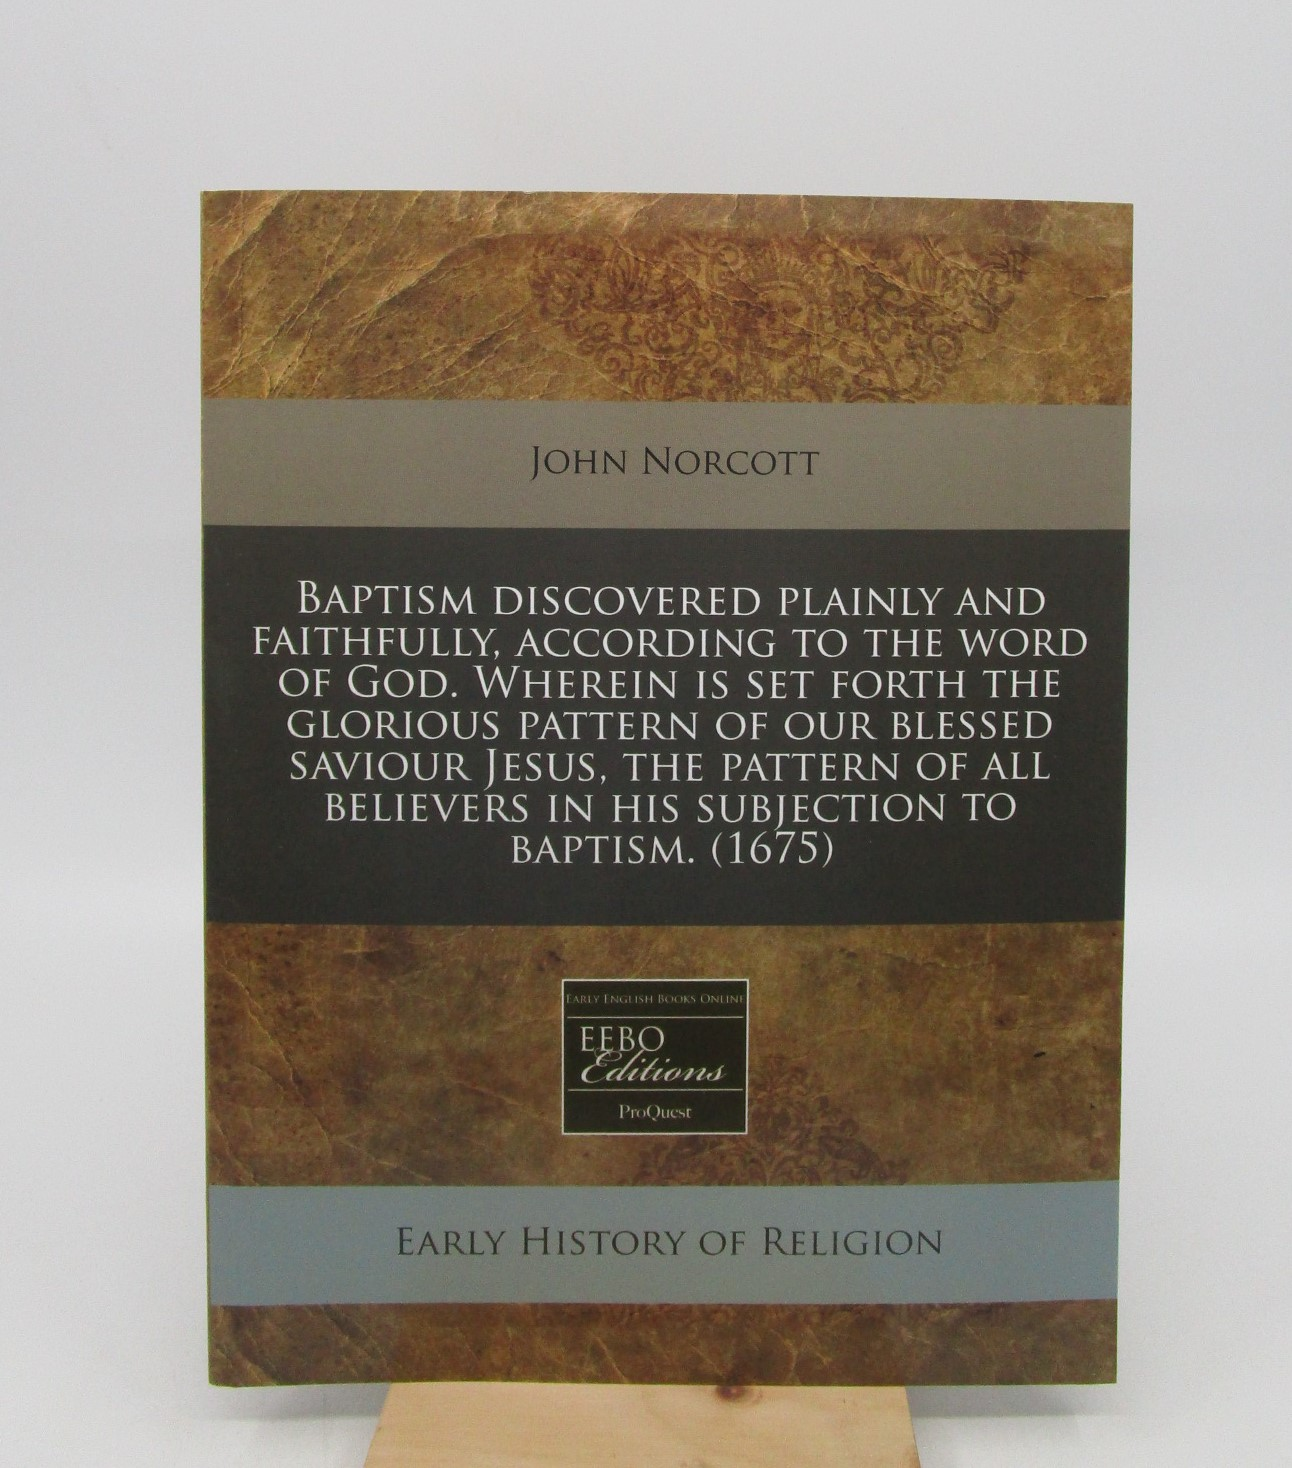 Image for Baptism Discovered Plainly and Faithfully, According to the Word of God. Wherein is Set Forth The Glorious Pattern of Our Blessed Saviour Jesus, The Pattern of All Believers in His Subjection to Baptism. (1675)